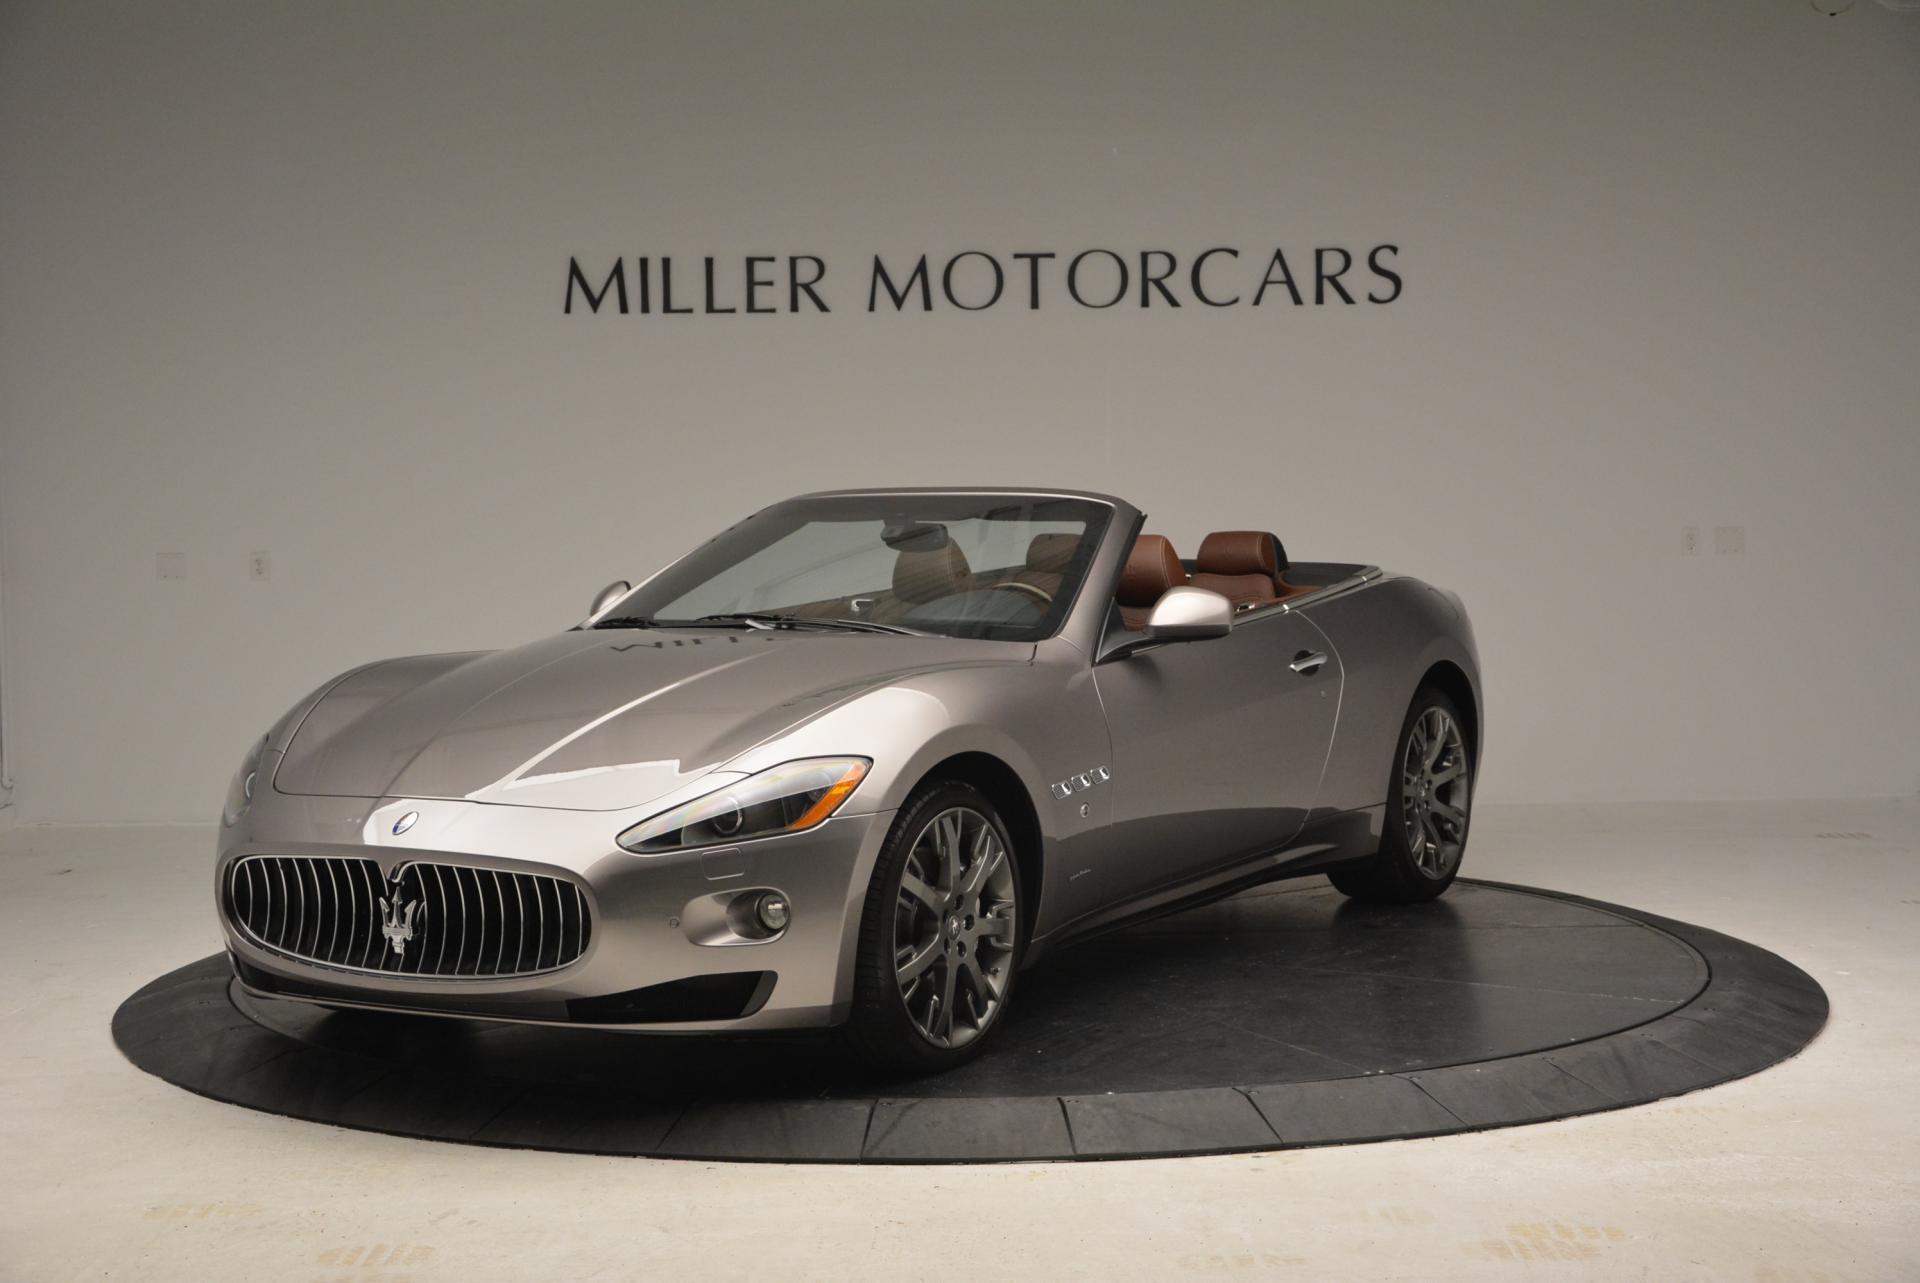 Used 2012 Maserati GranTurismo for sale Sold at Maserati of Greenwich in Greenwich CT 06830 1